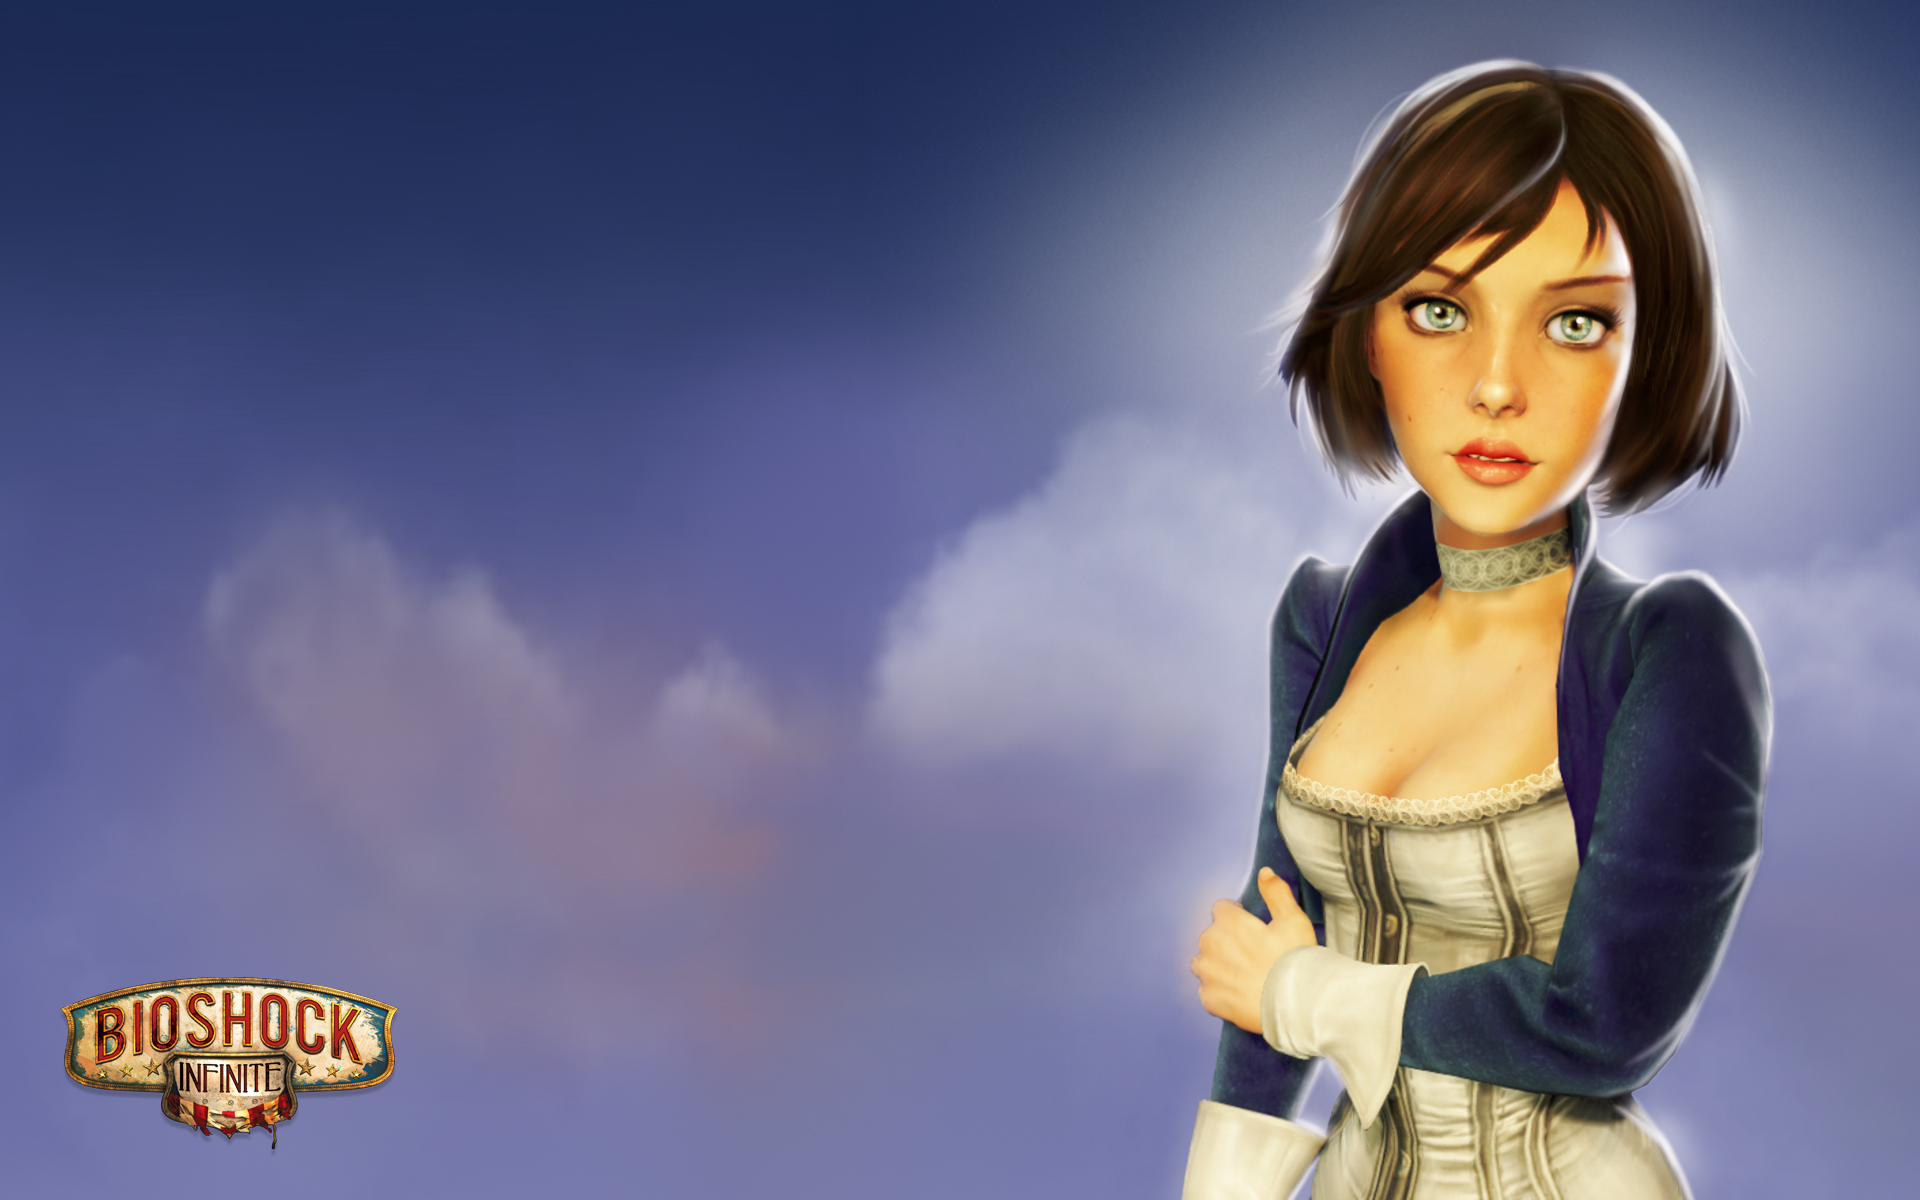 Rock N Roll Wallpaper For Girls Elizabeth Bioshock Infinite Mystery Wallpaper